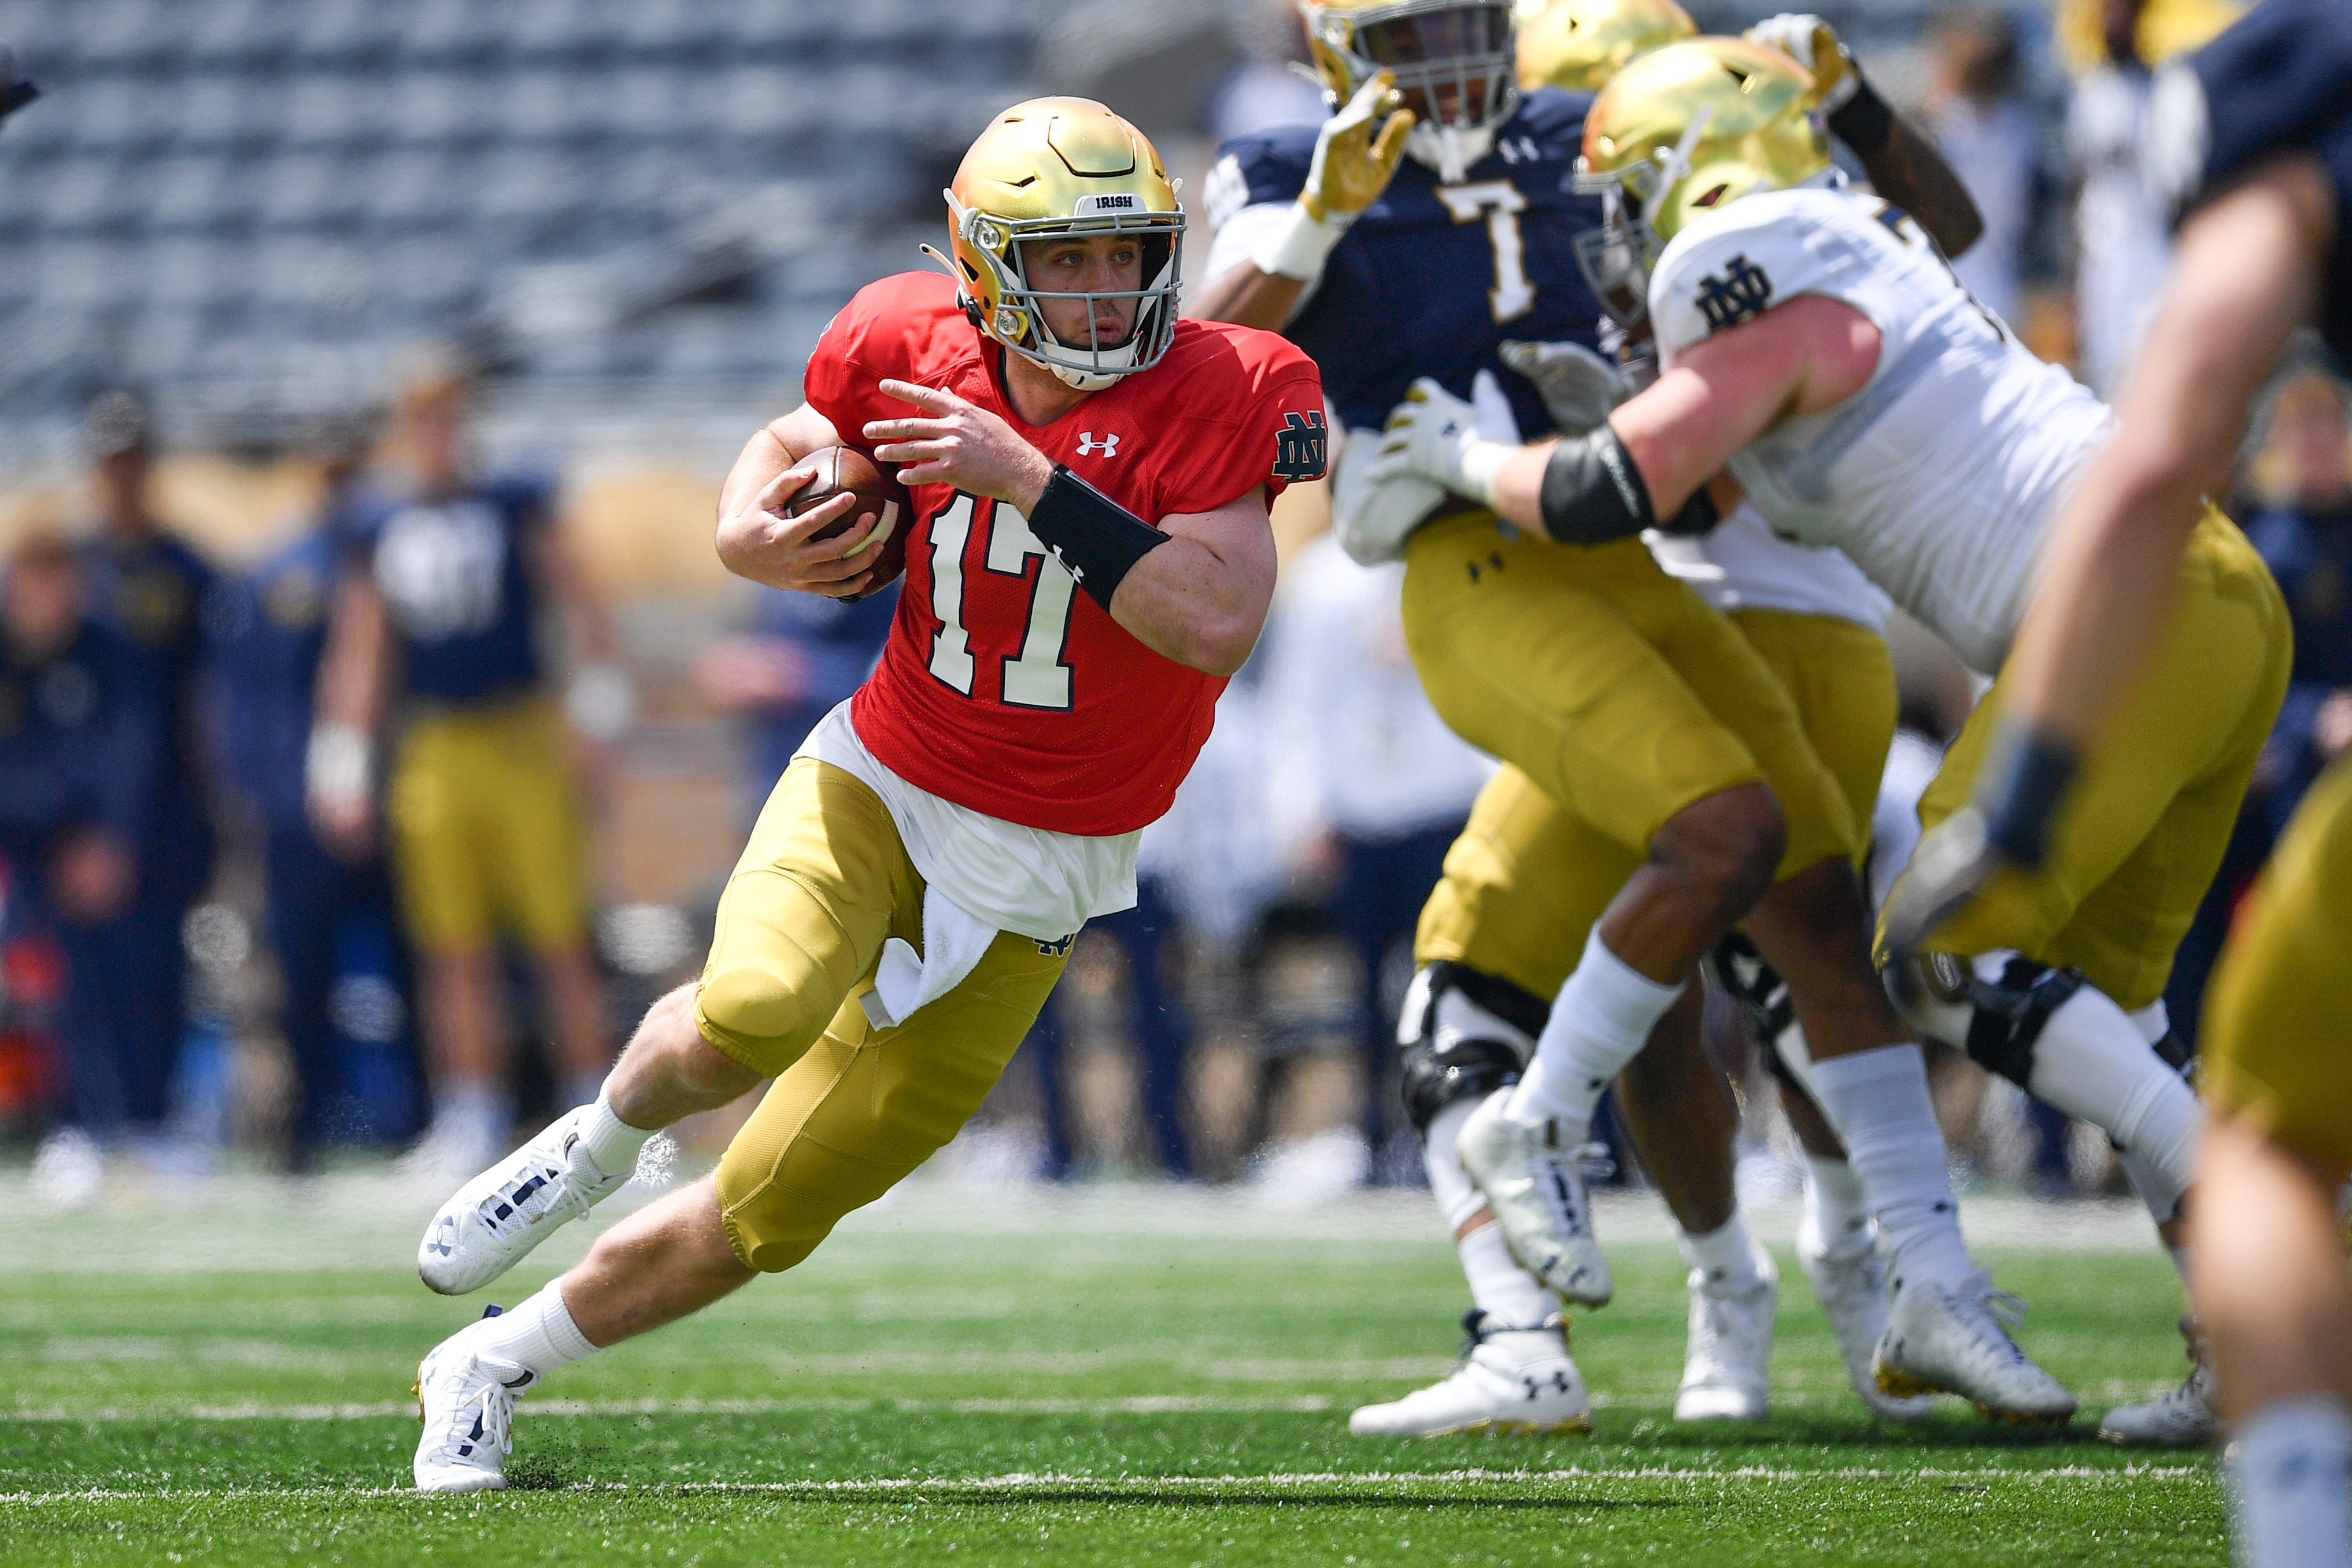 Notre Dame's Jack Coan, who transferred from Wisconsin, is expected to contend for the starting job.